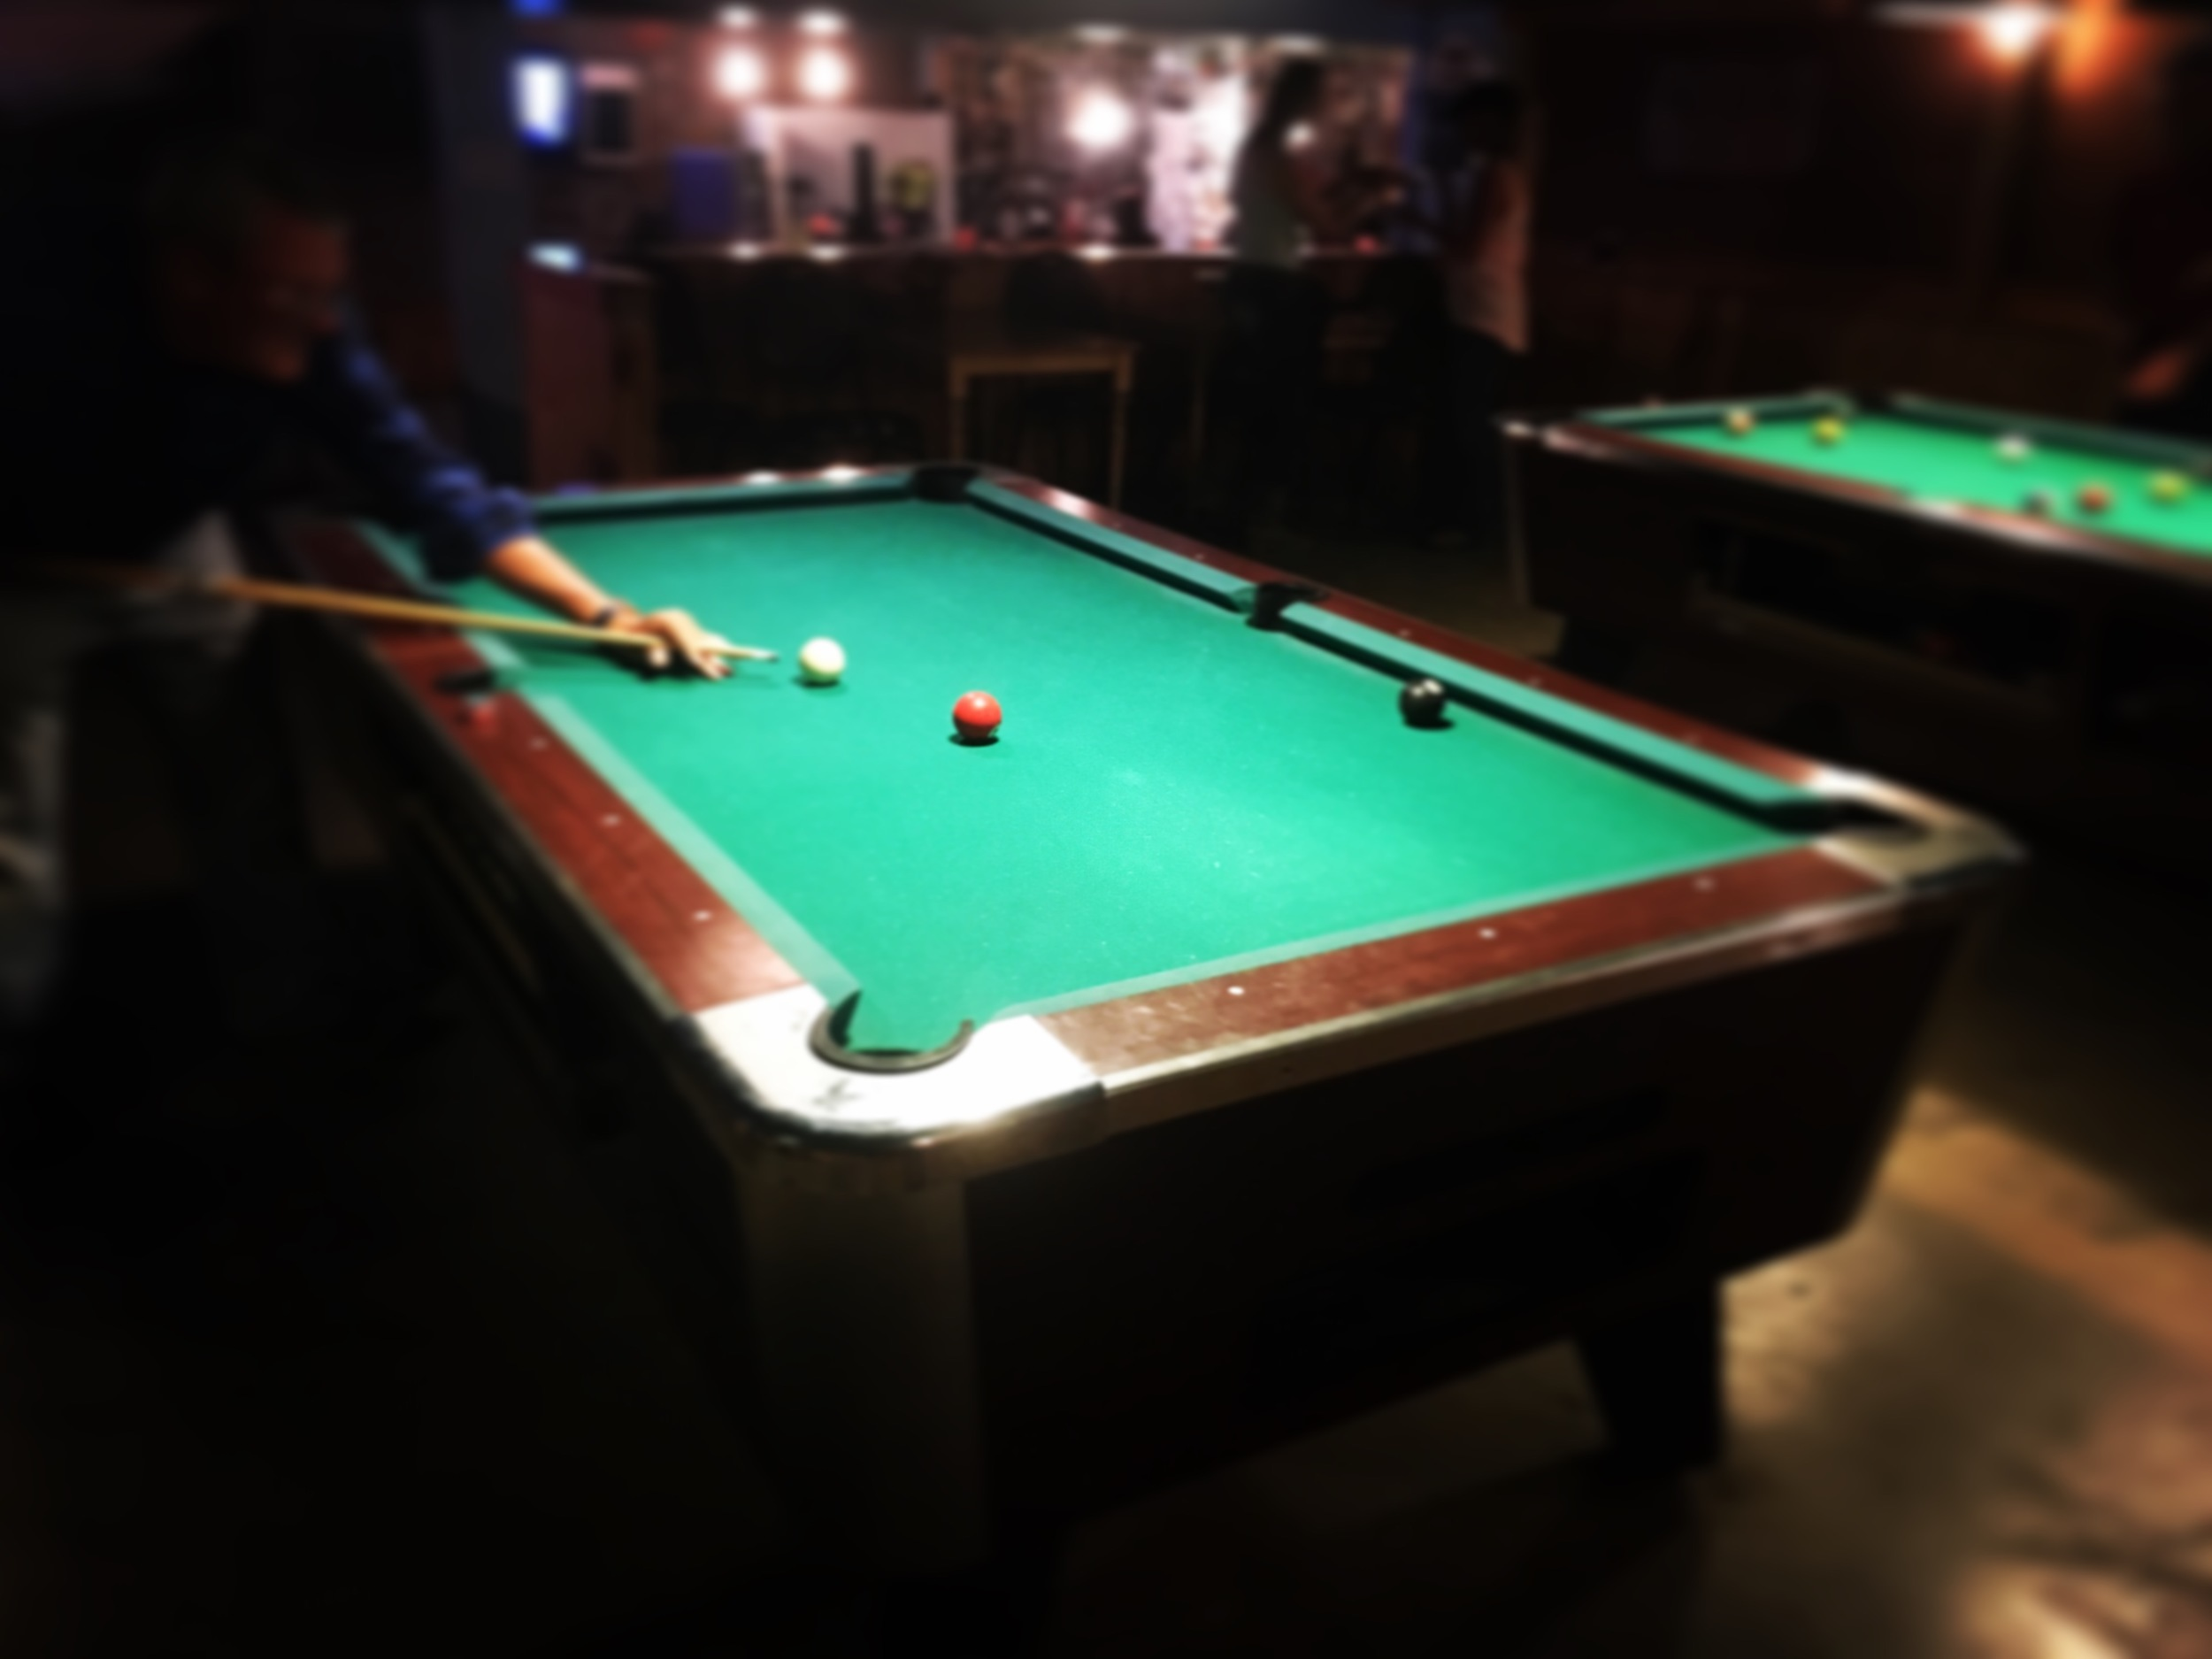 Larry getting ready to sink the 8-ball.